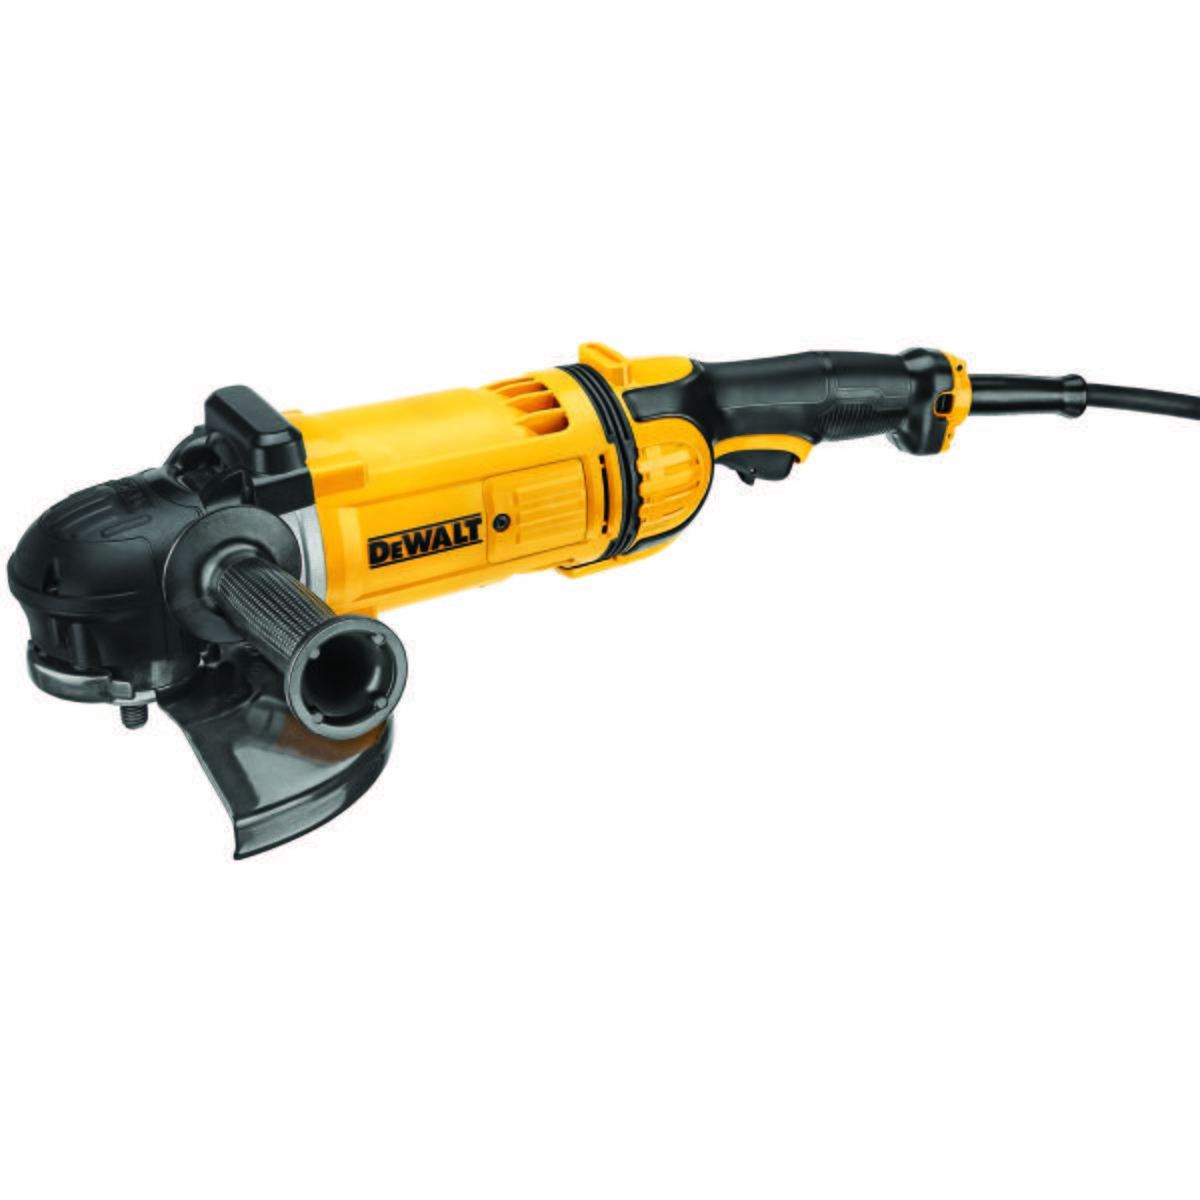 """1/2"""" SINGLE SPEED HAMMER DRILL 7A - 9"""" 6,500 rpm 4.5HP Angle Grinder, No lock on"""